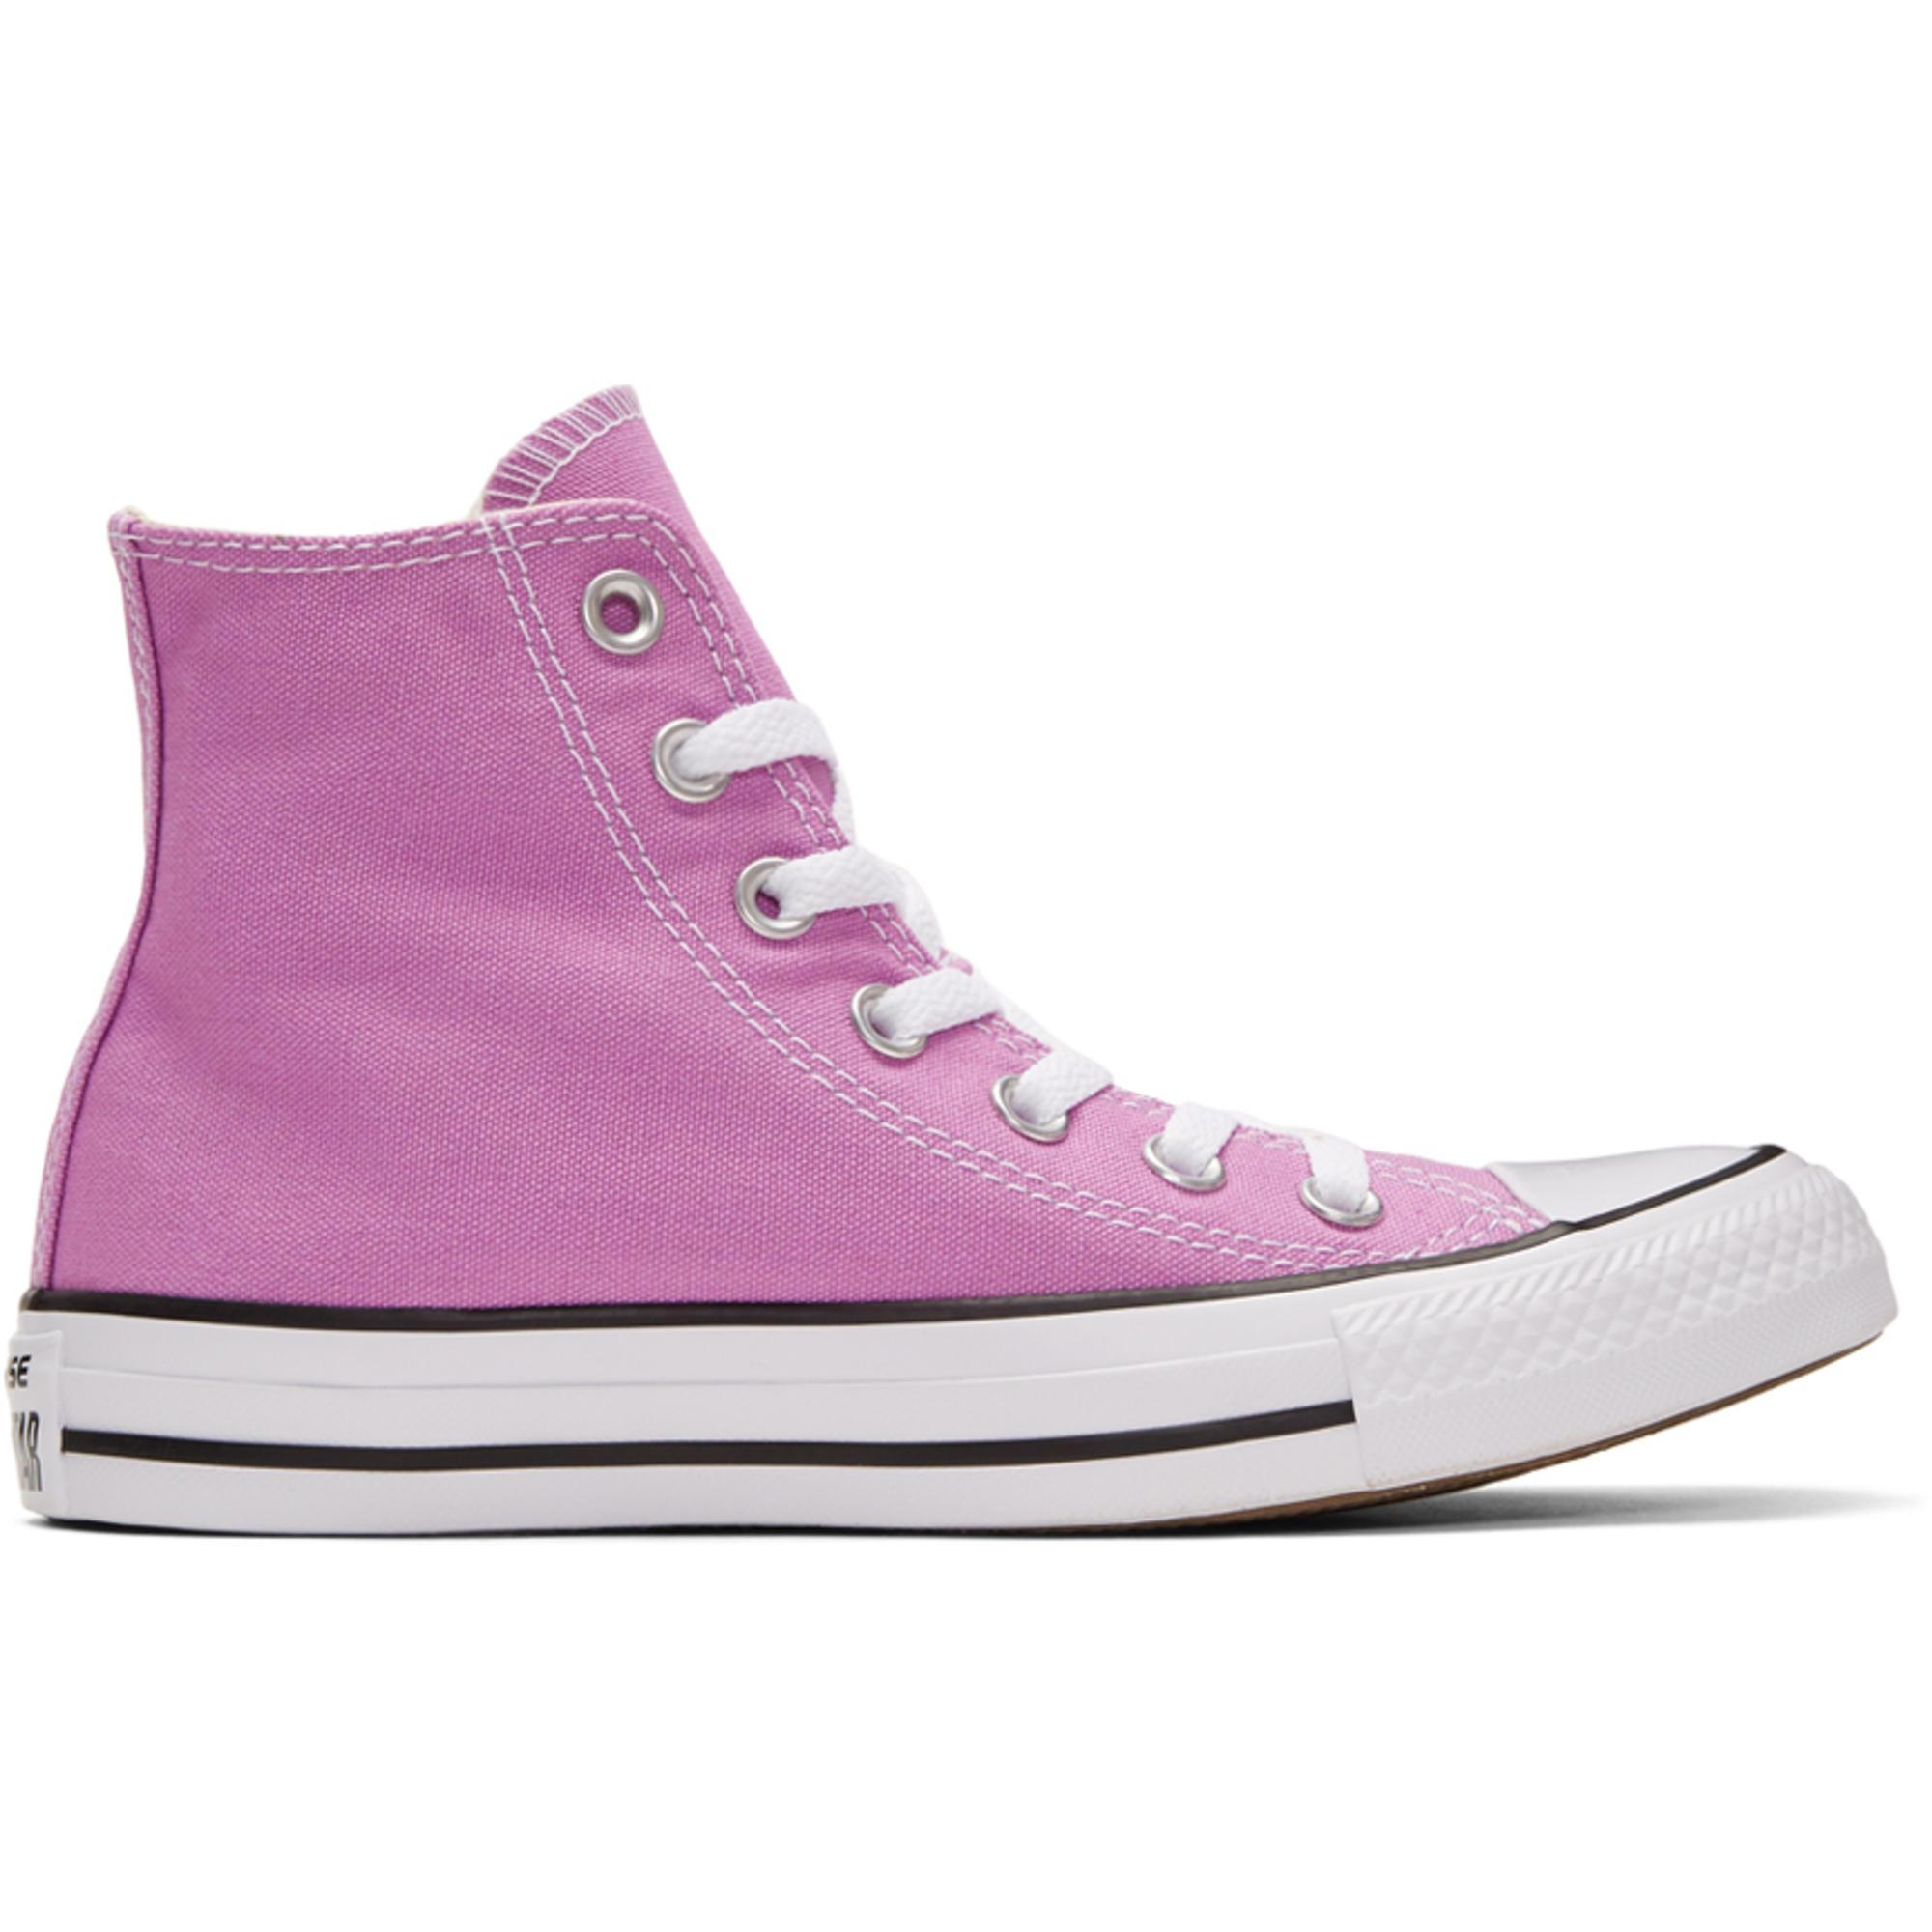 da6090f607ead Baskets montantes violettes Classic Chuck Taylor All Star OX ...